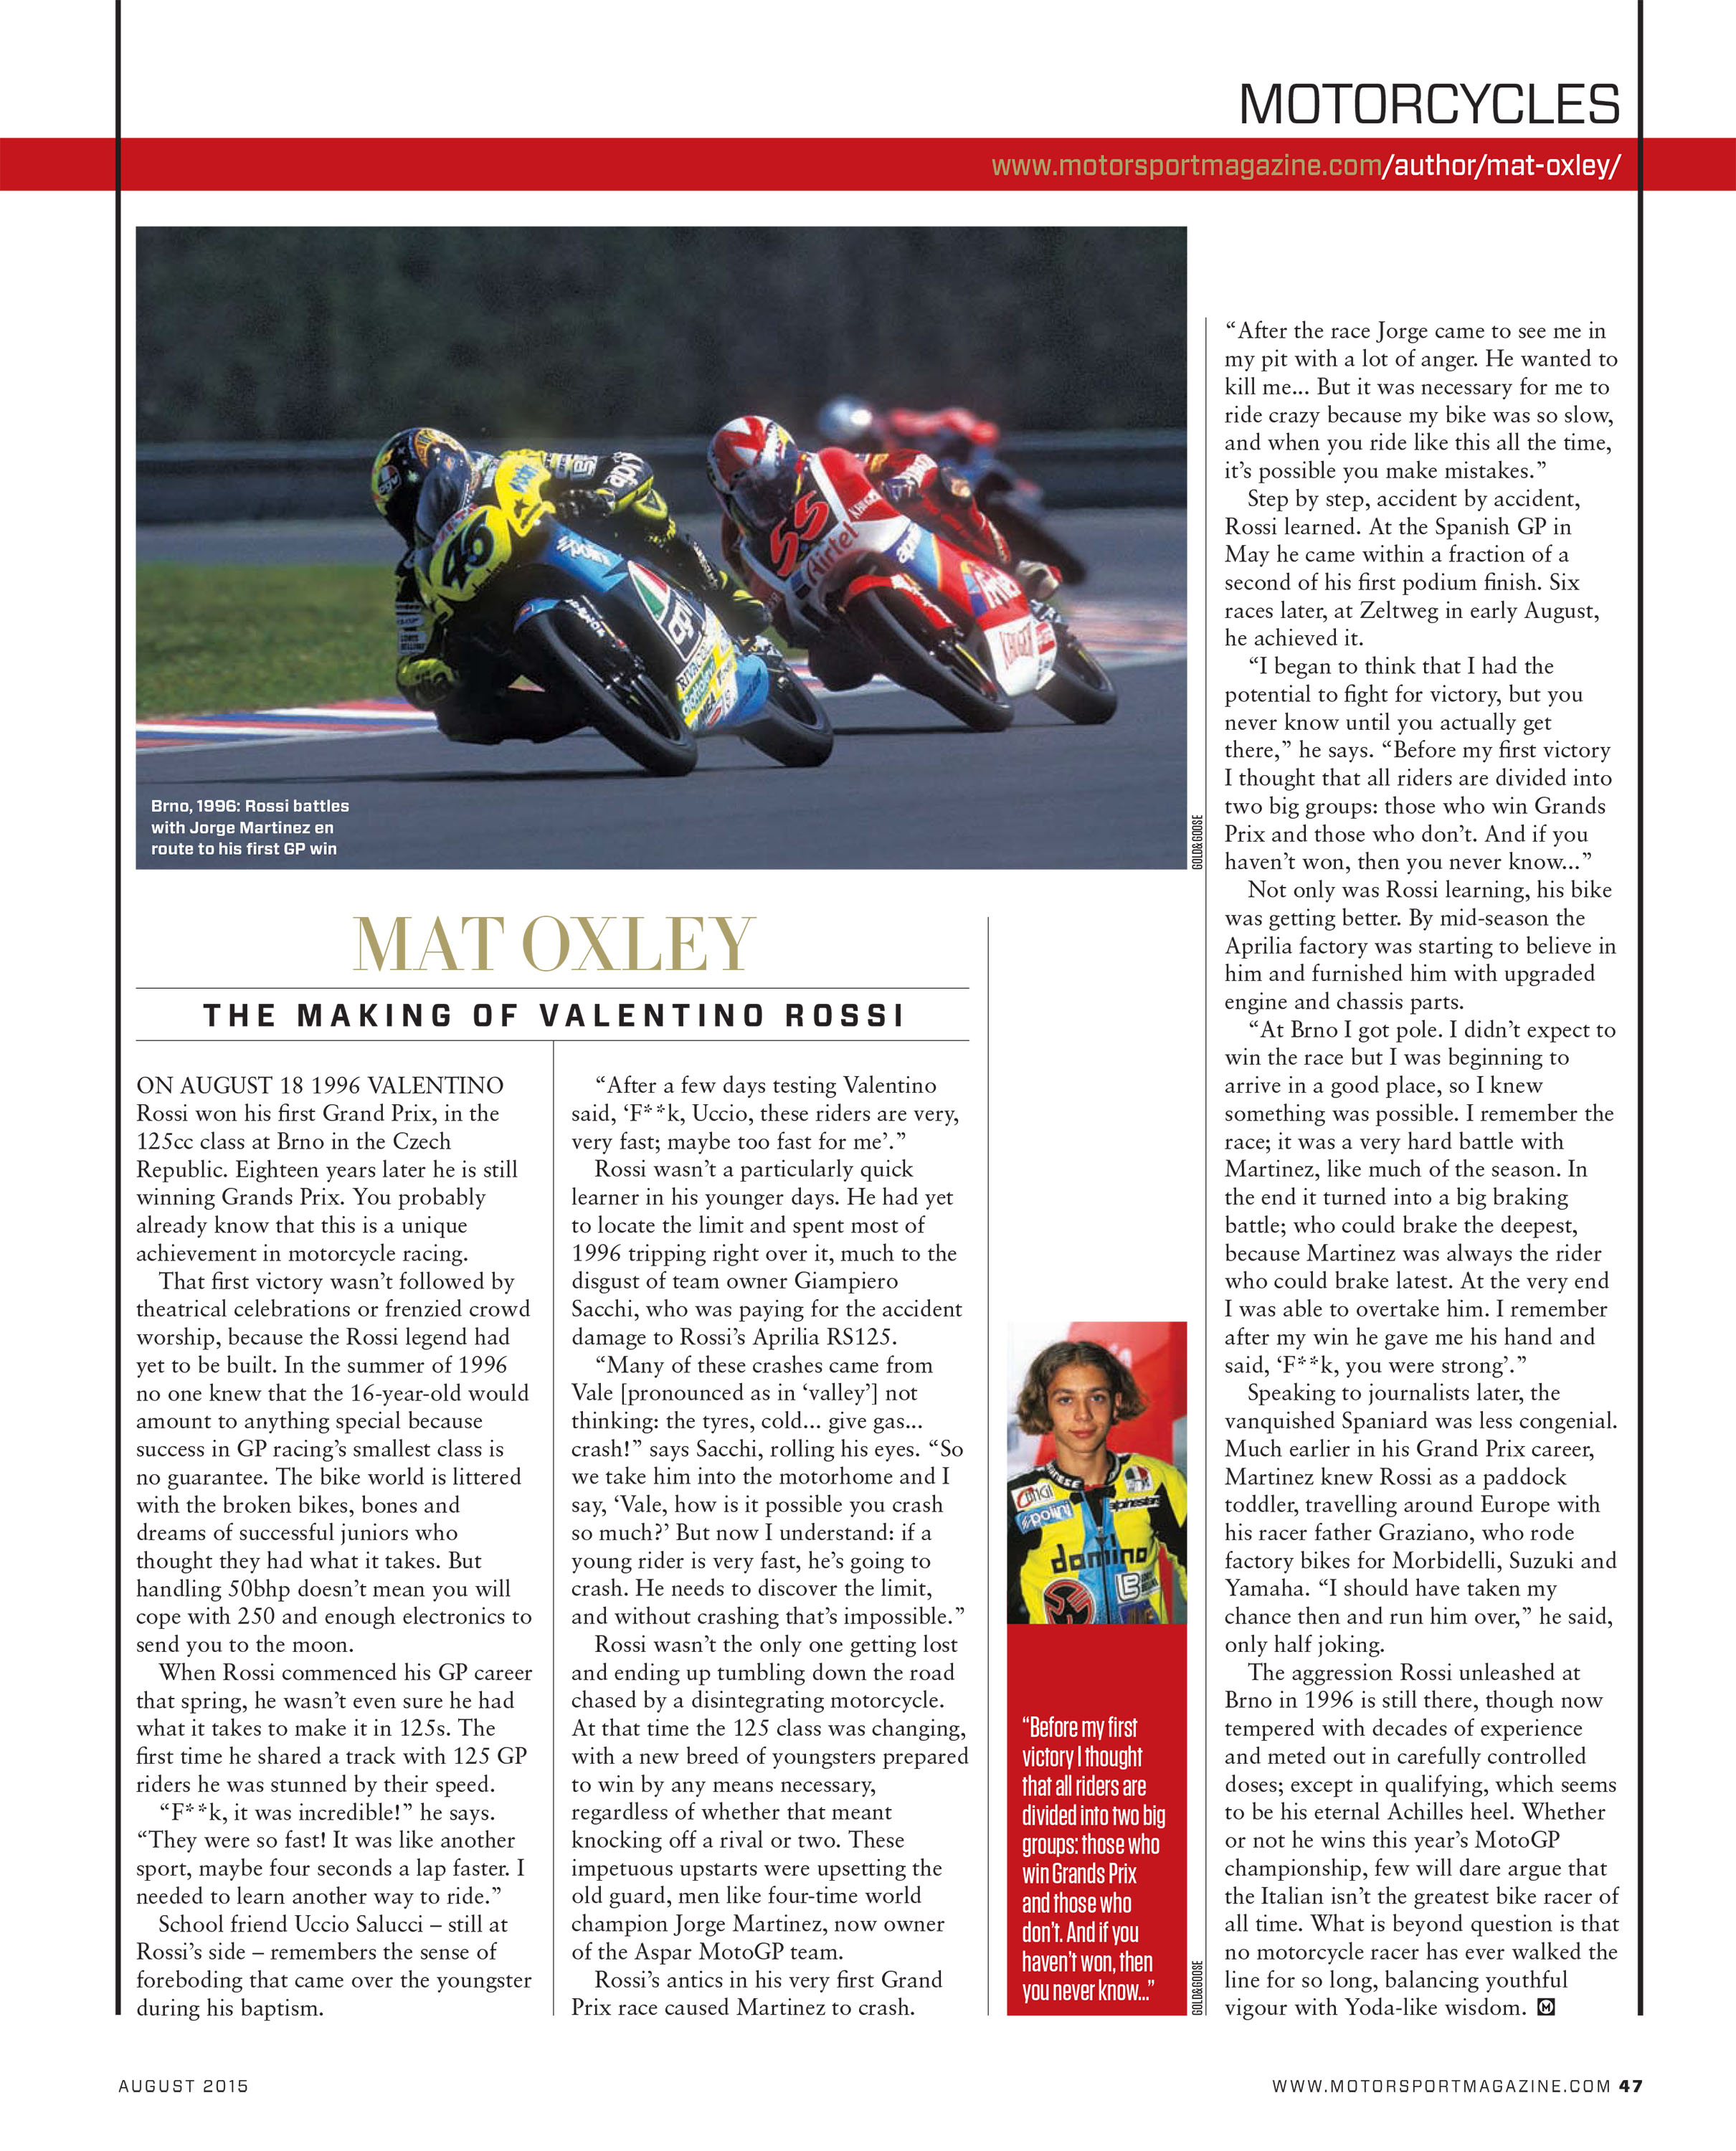 The making of Valentino Rossi image